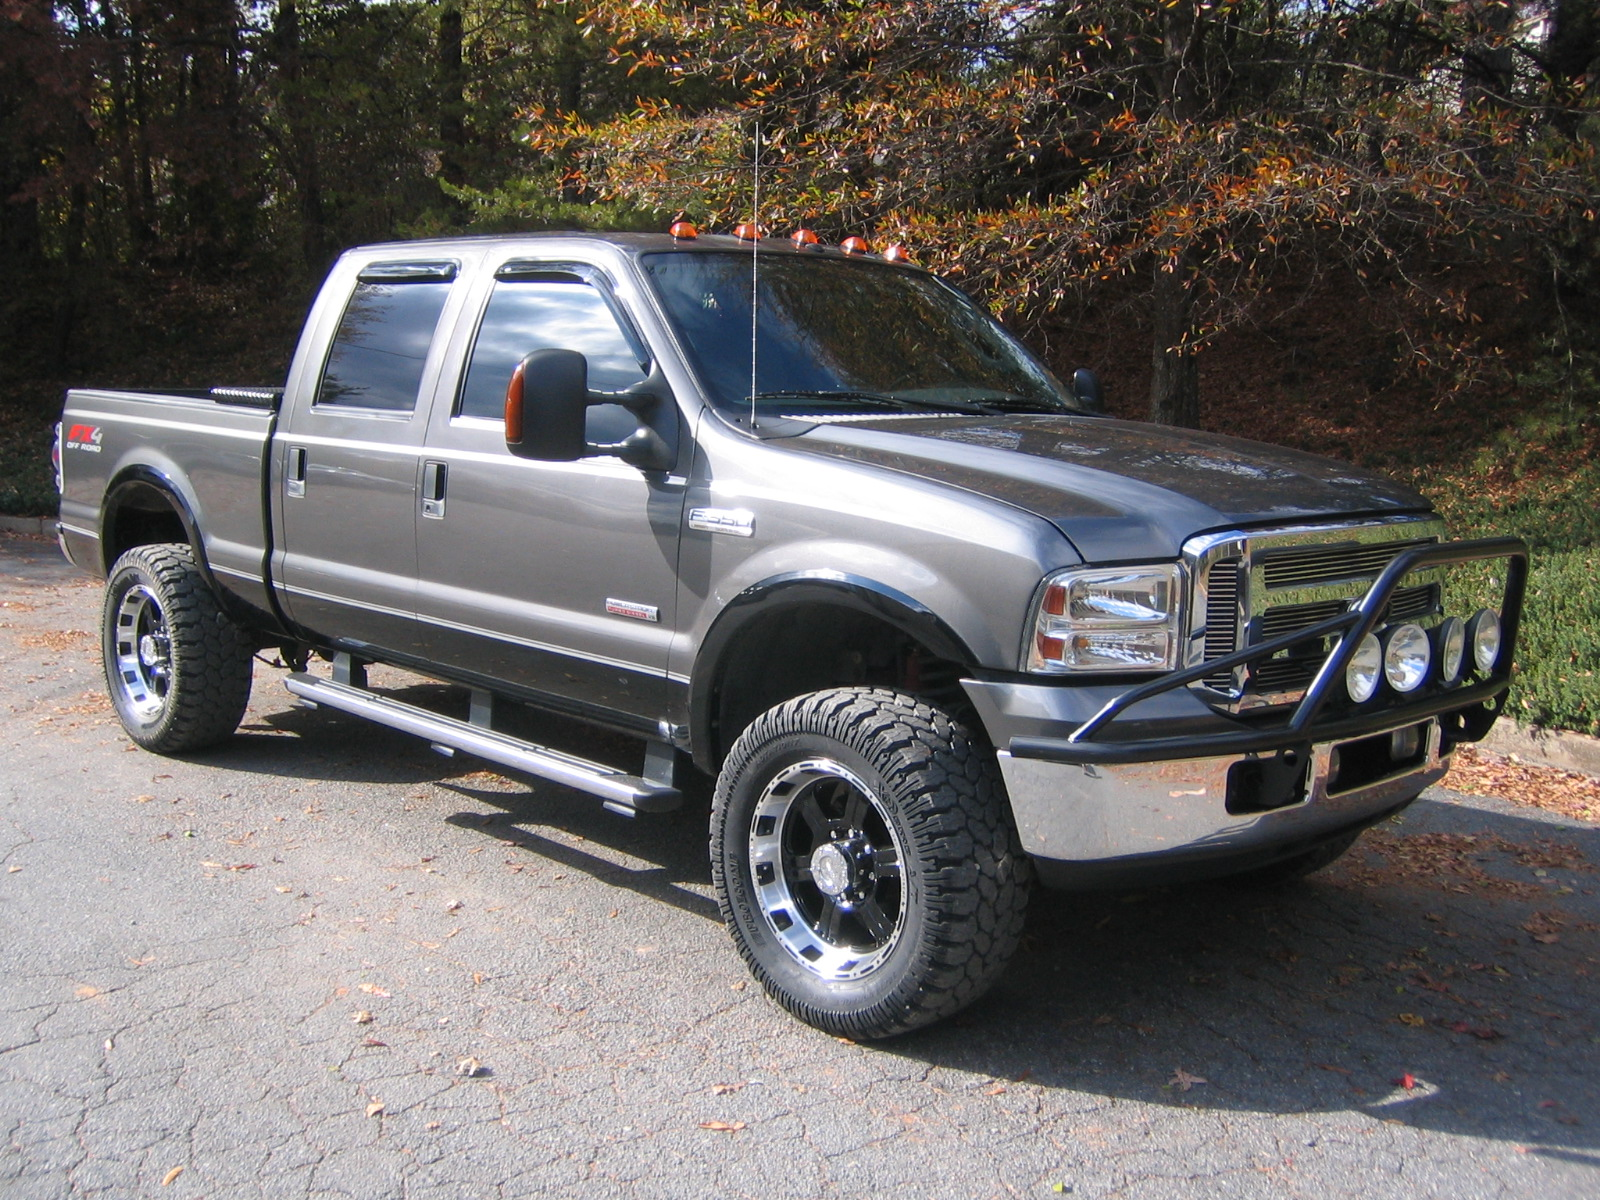 2004 Ford F-350 Super Duty #11